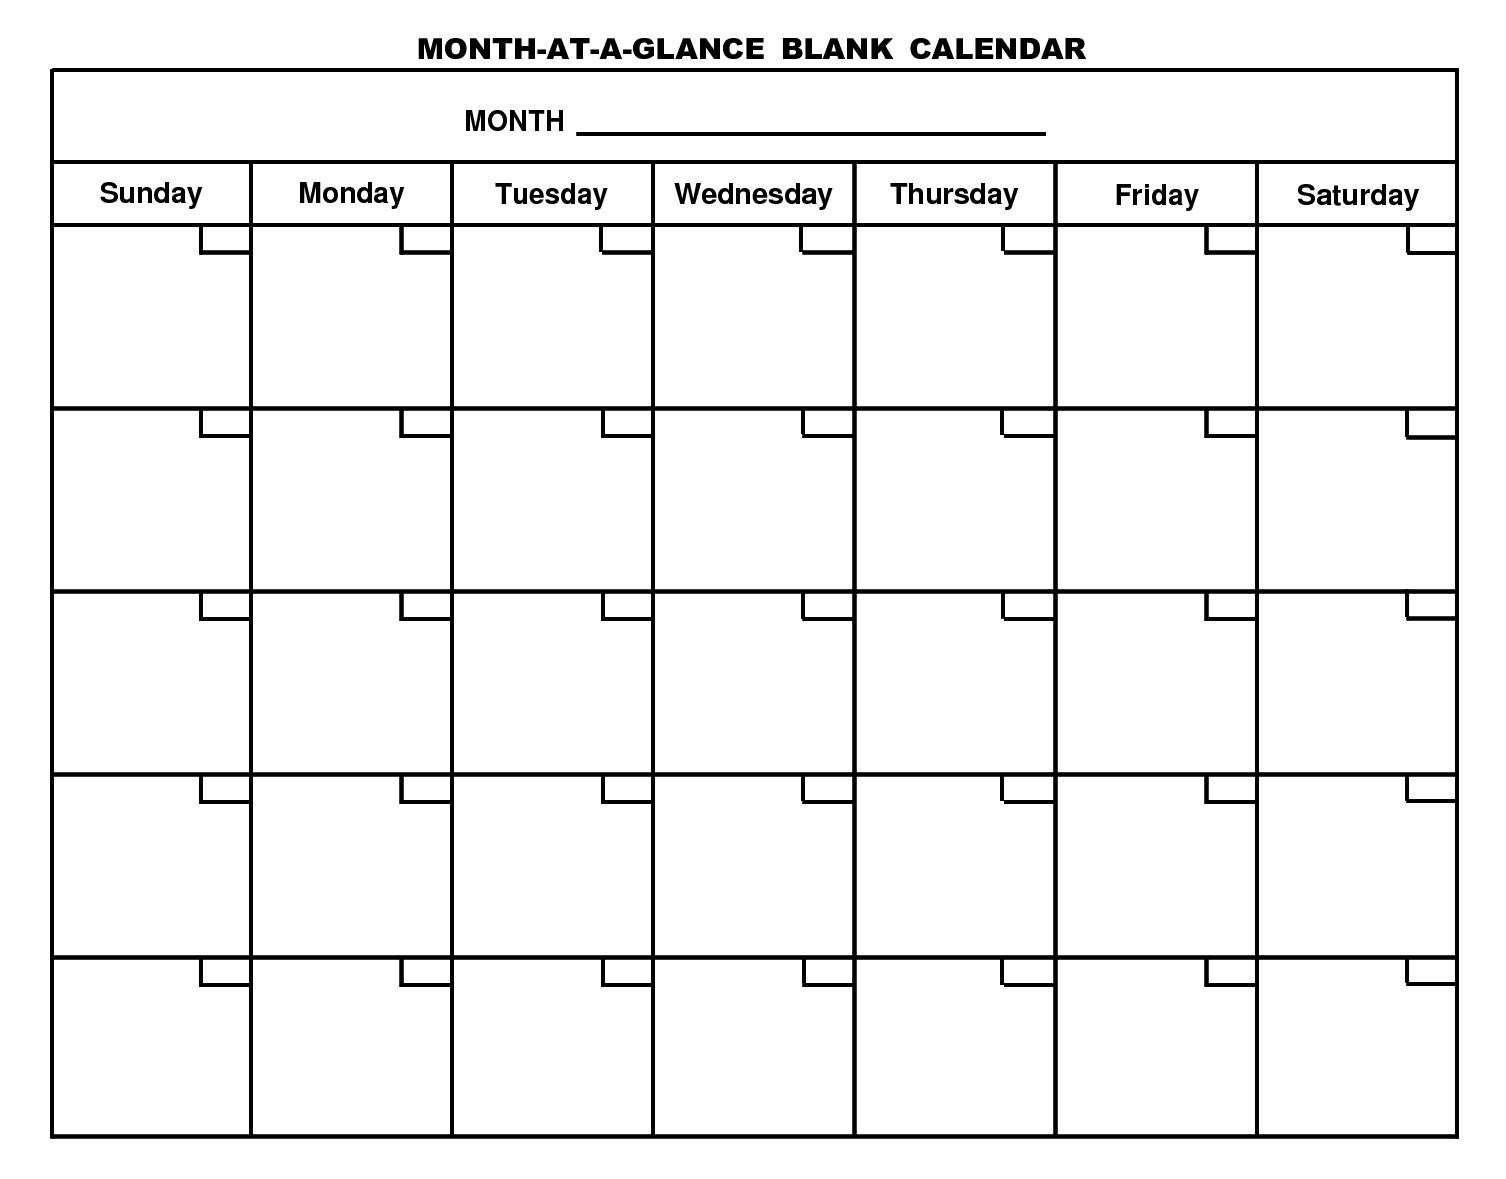 Month At A Glance Blank Calendar Template - Wpa.wpart.co-Month At A Glance Blank Calendar